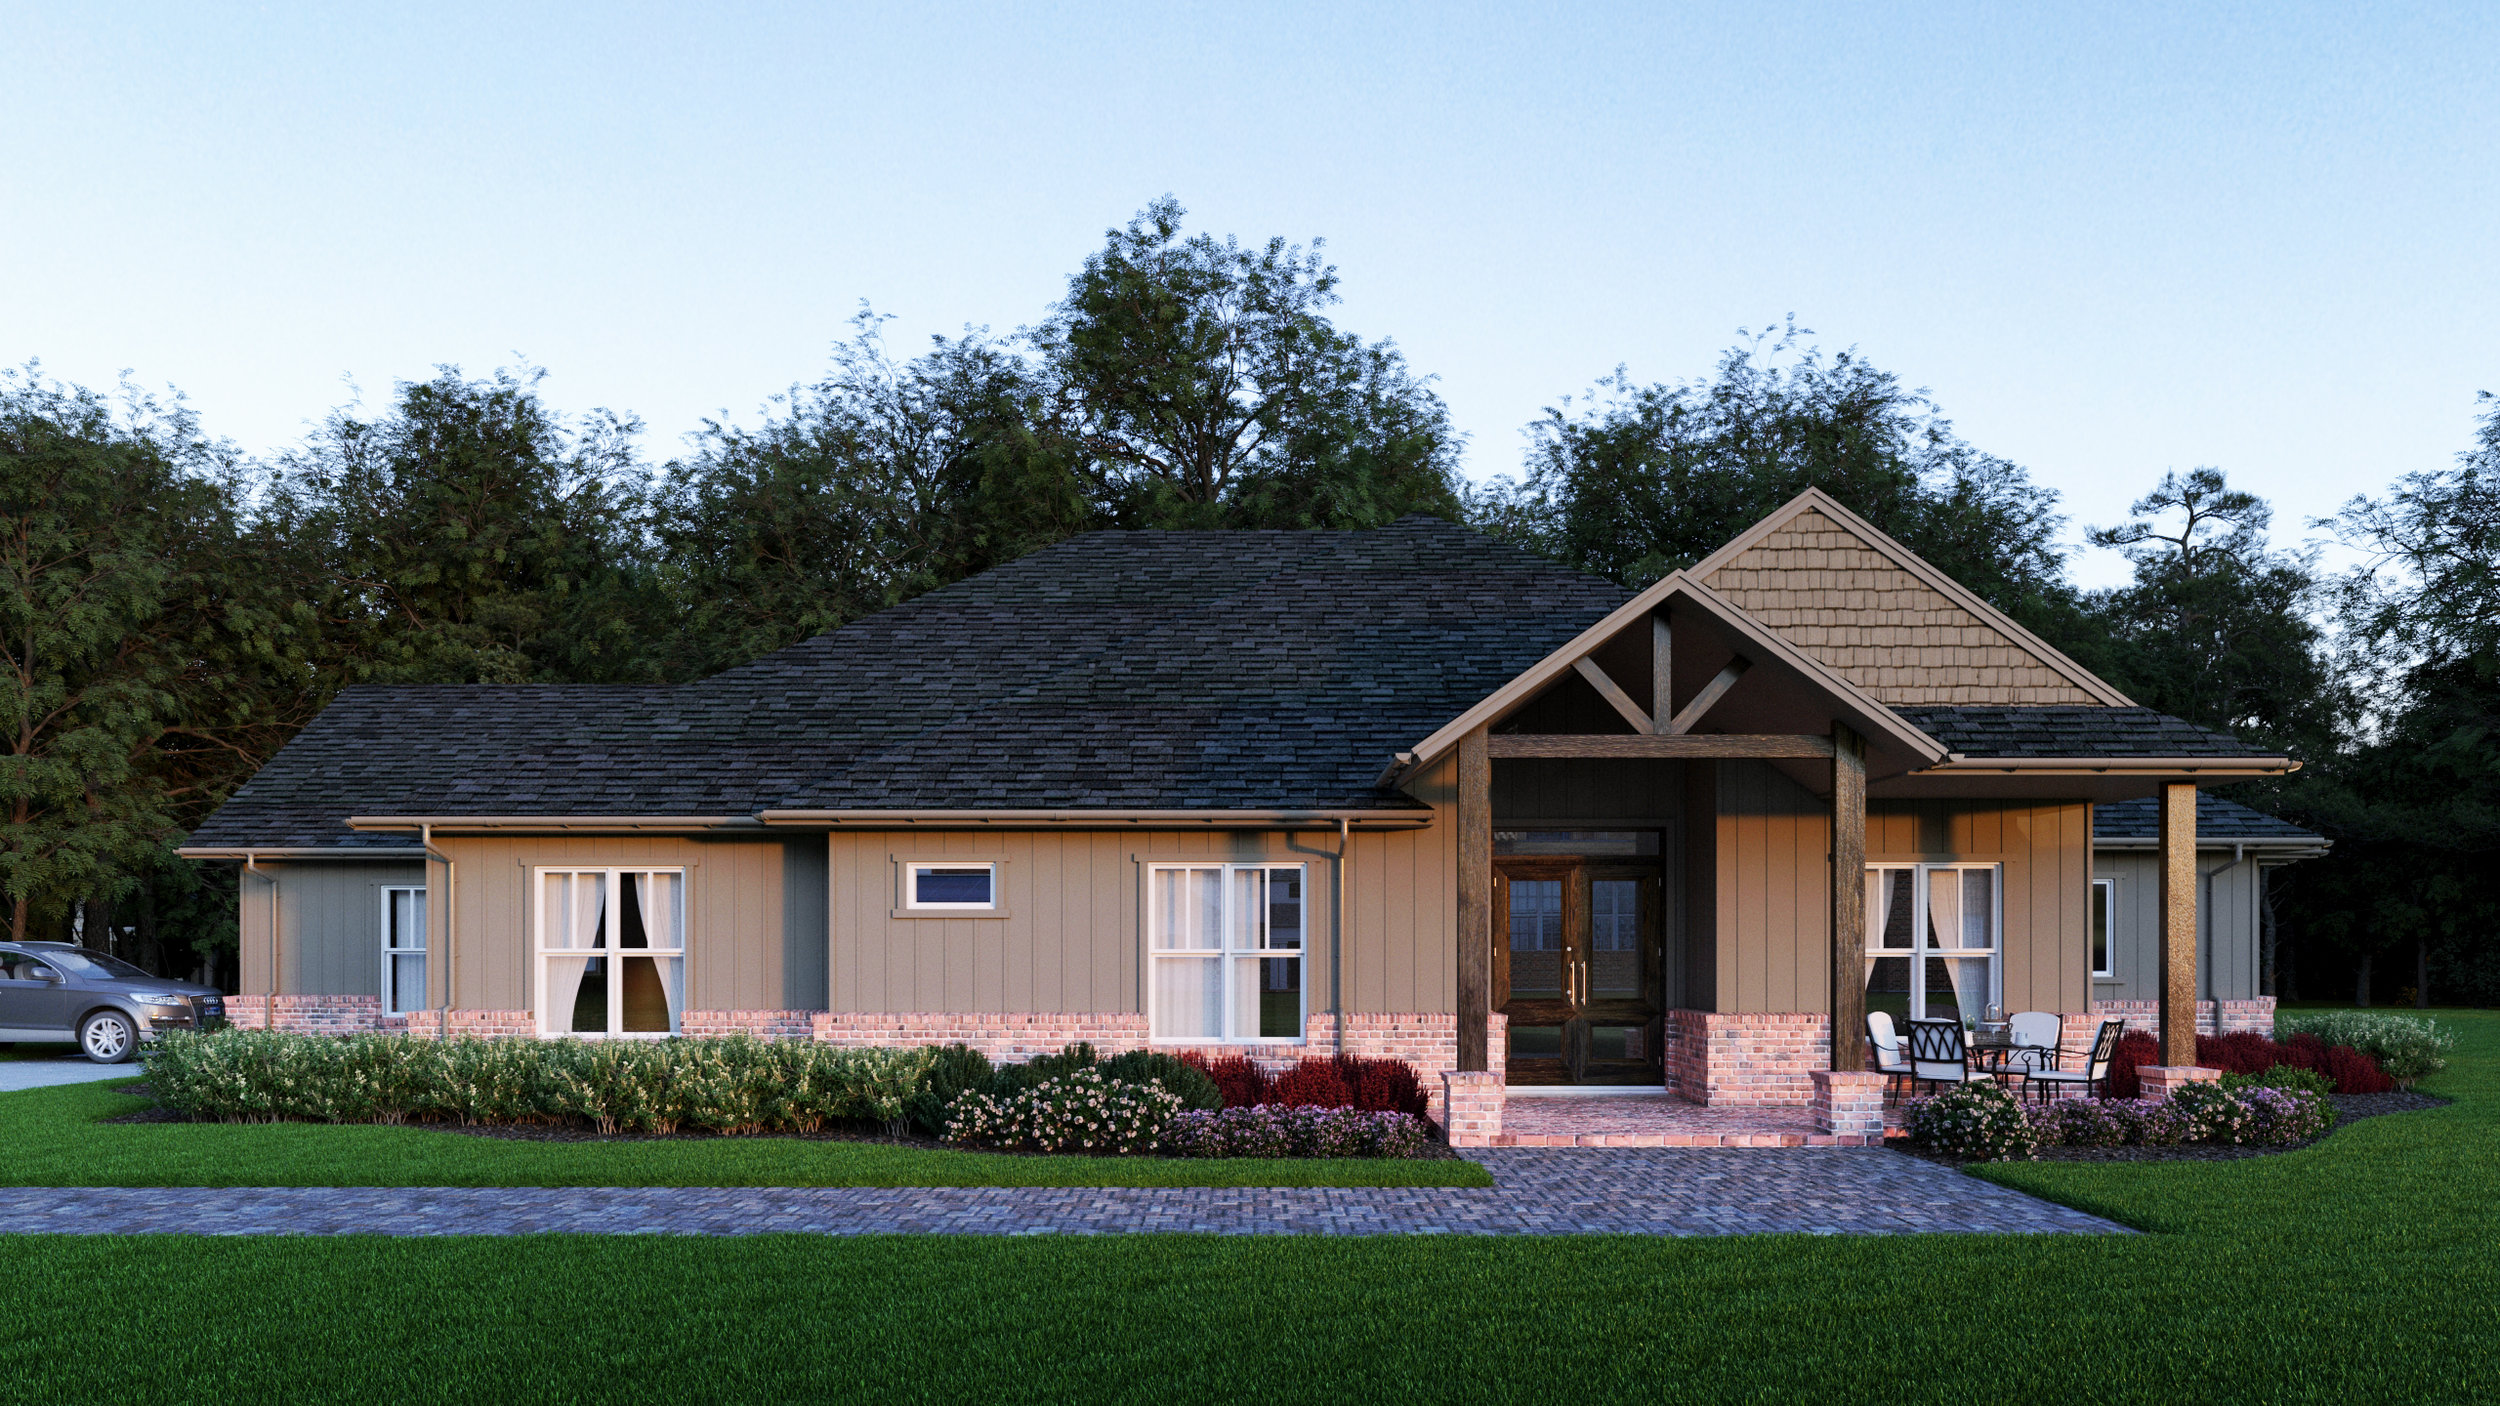 Beds: 4  Baths: 2.5  This plan features 3 bedrooms, 2 and a half bathrooms, an open concept living area with a fireplace, a study or 4th bedroom, a spacious utility room, a mud room off of the back porch and a large master suite.   Introductory Pricing $399,450